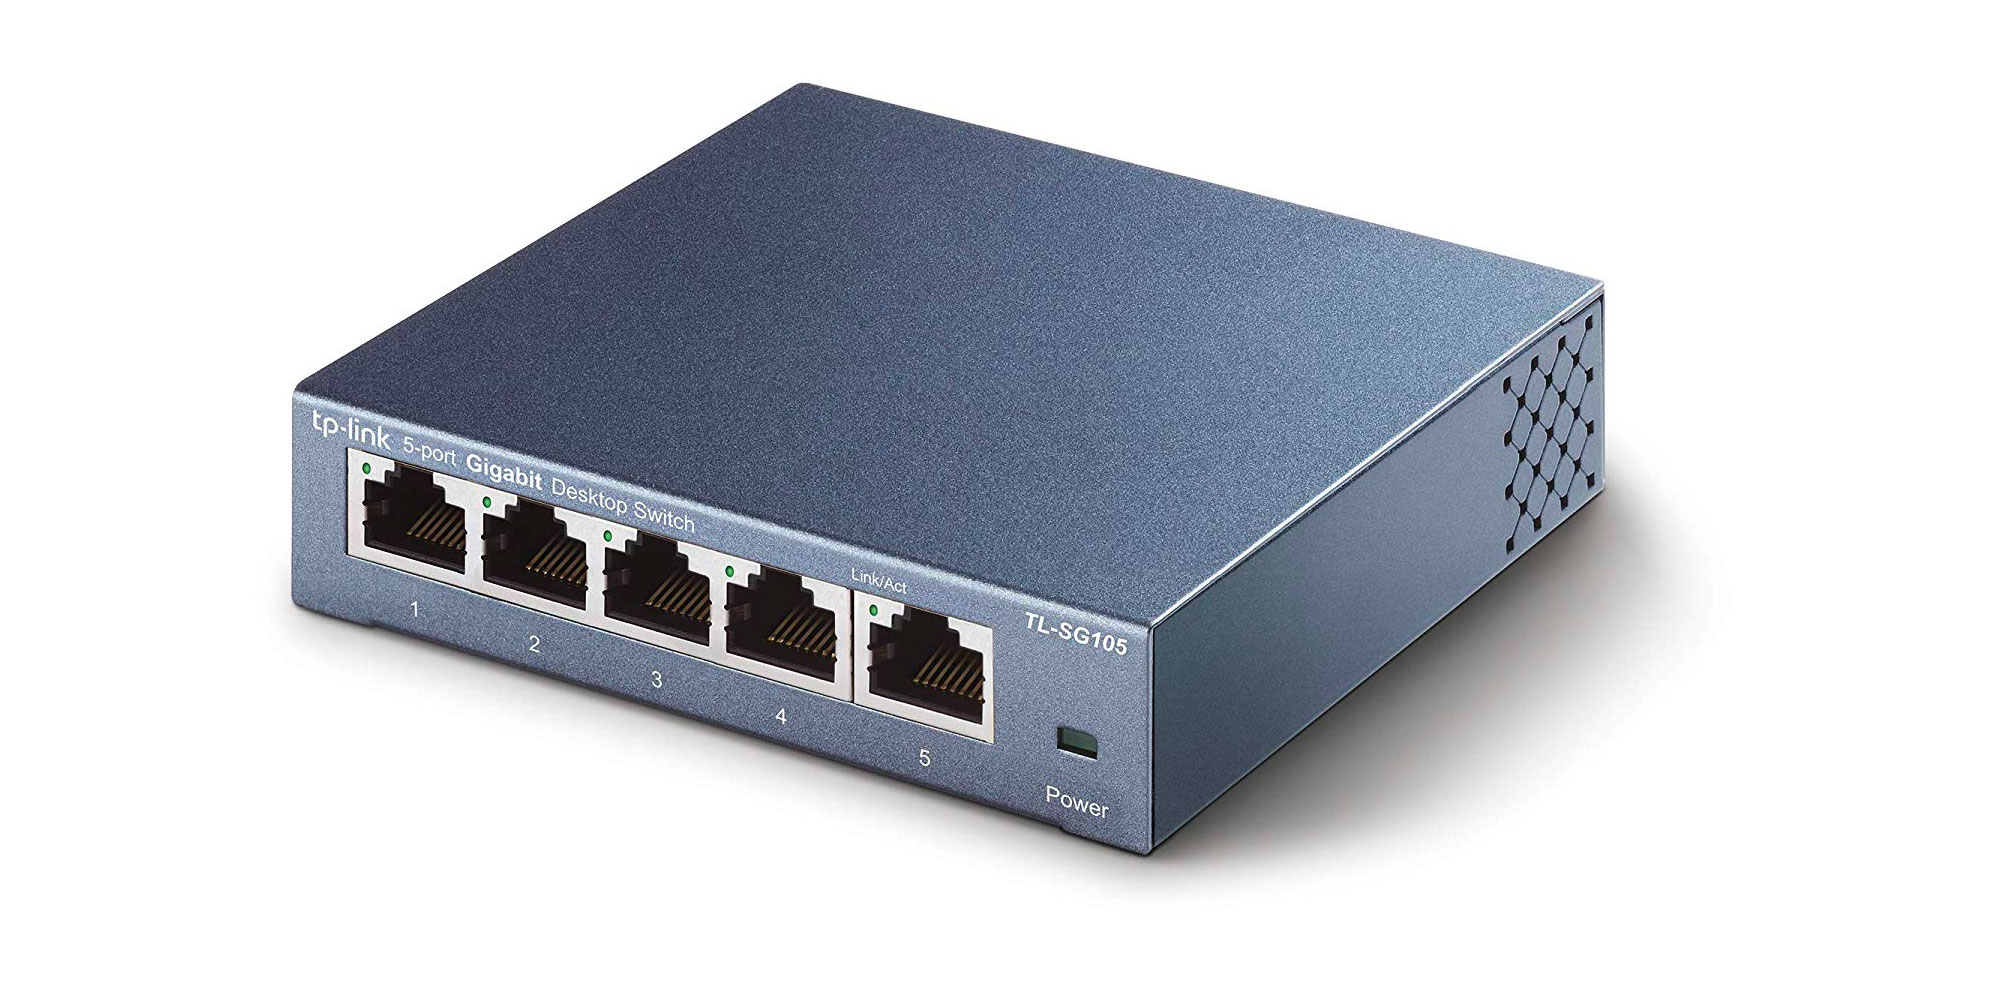 TP-Link 5 Port Gigabit Ethernet Network Switch  Ethernet Splitter Sturdy Metal